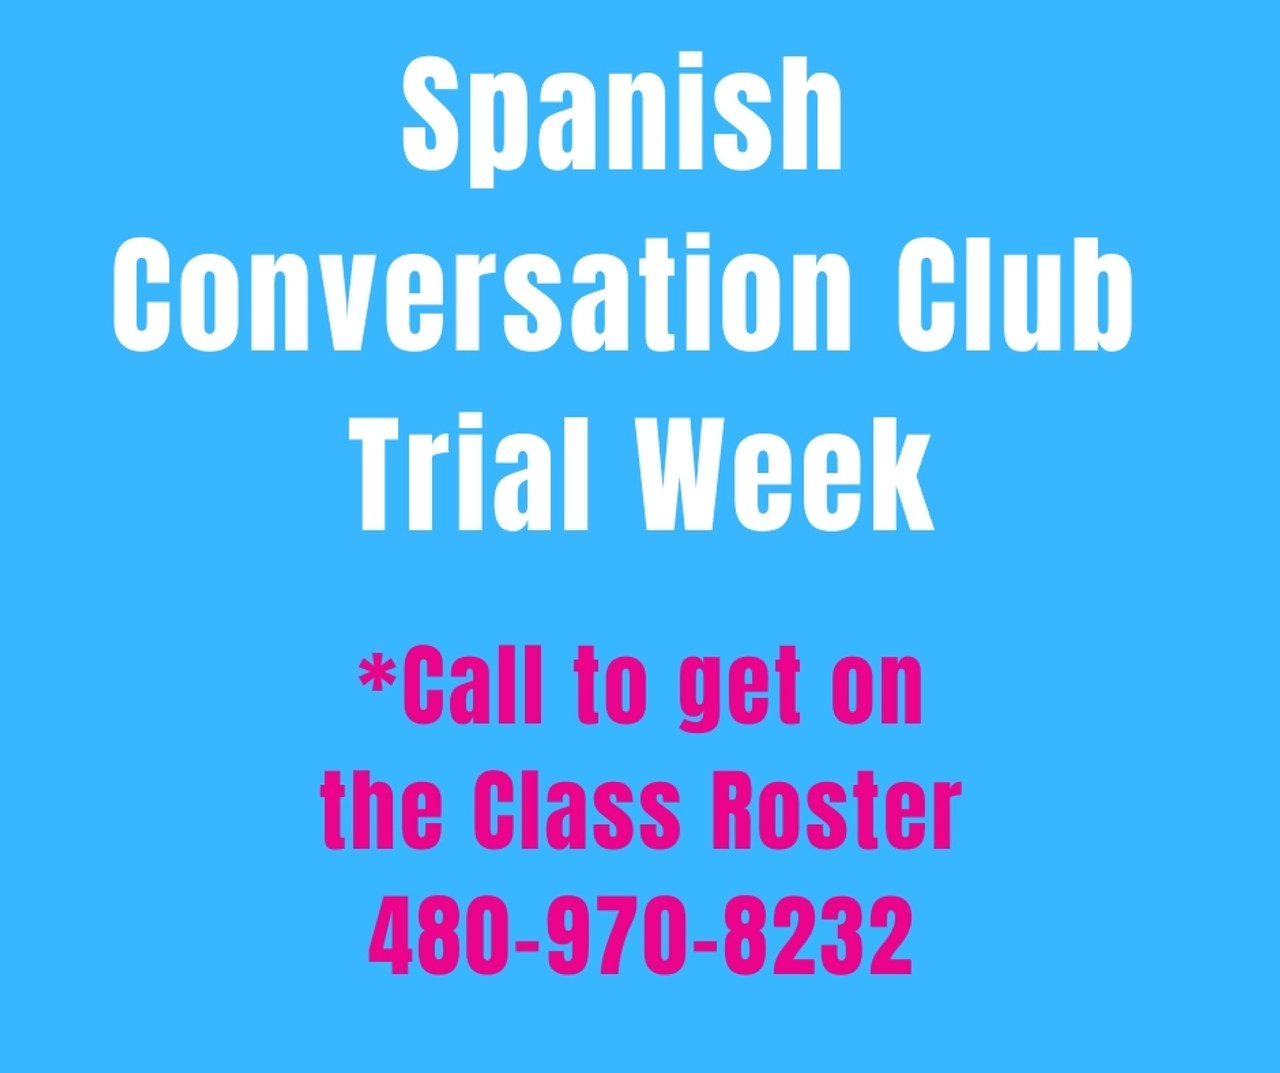 SPANISH CONVERSATION CLUB TRIAL WEEK *LIMITED AVAILABILITY